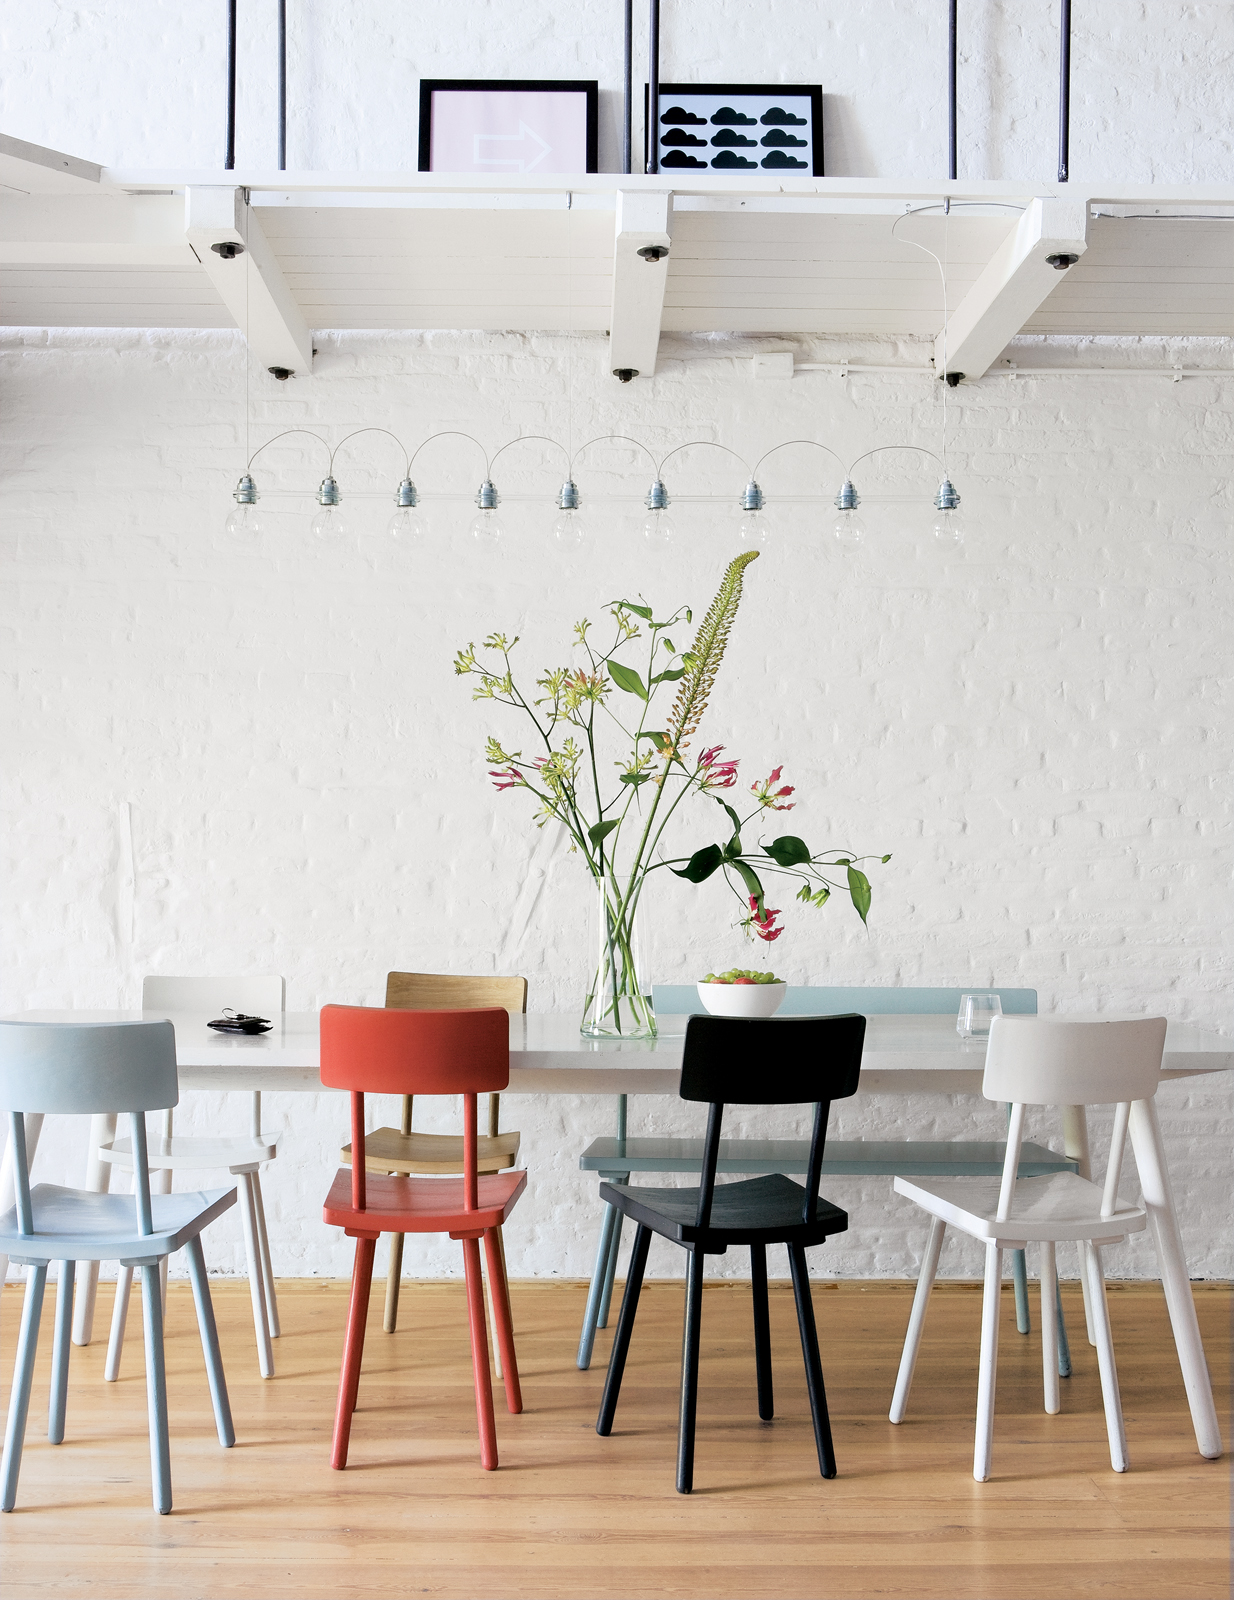 """Piet Hein Eek's wooden chairs add a touch of color to the monochromatic apartment. """"I'm a fan of simple modern furniture, with a twist,"""" says Carr. """"I wanted to buy everything from Piet Hein Eek."""""""